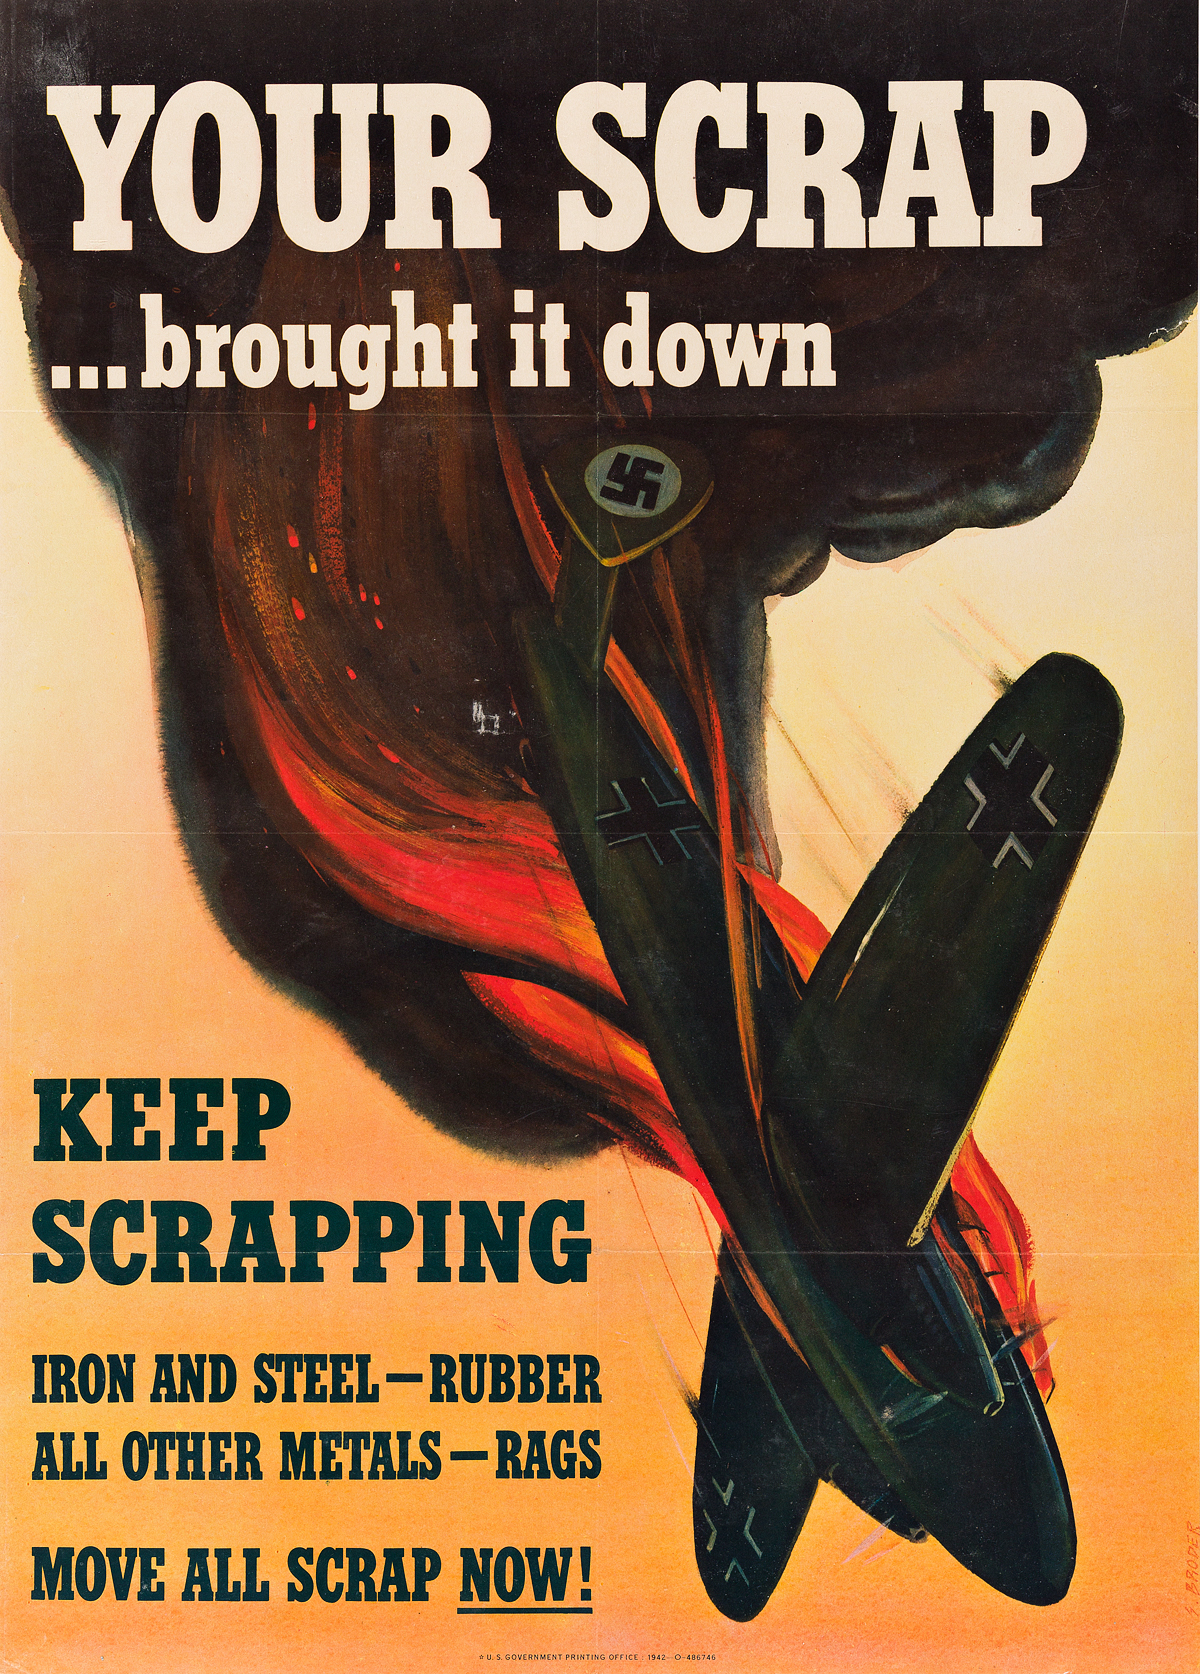 S-BRODER-(DATES-UNKNOWN)-YOUR-SCRAP----BROUGHT-IT-DOWN-1942-28x20-inches-71x50-cm-US-Government-Printing-Office-[Washington